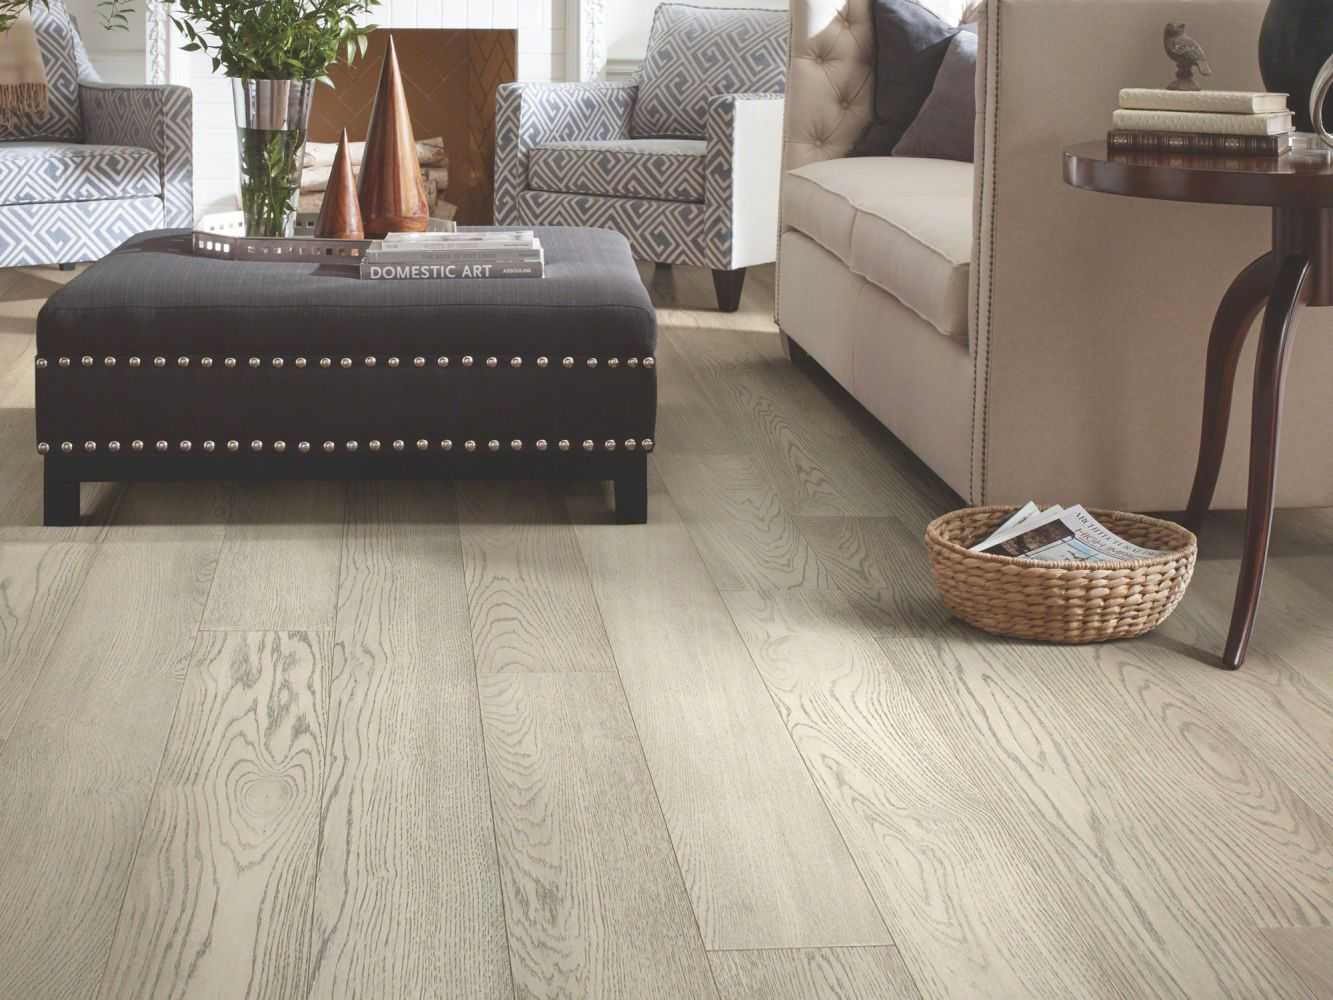 Shaw Floors Home Fn Gold Hardwood Aston Hall Baroness 05016_HW637